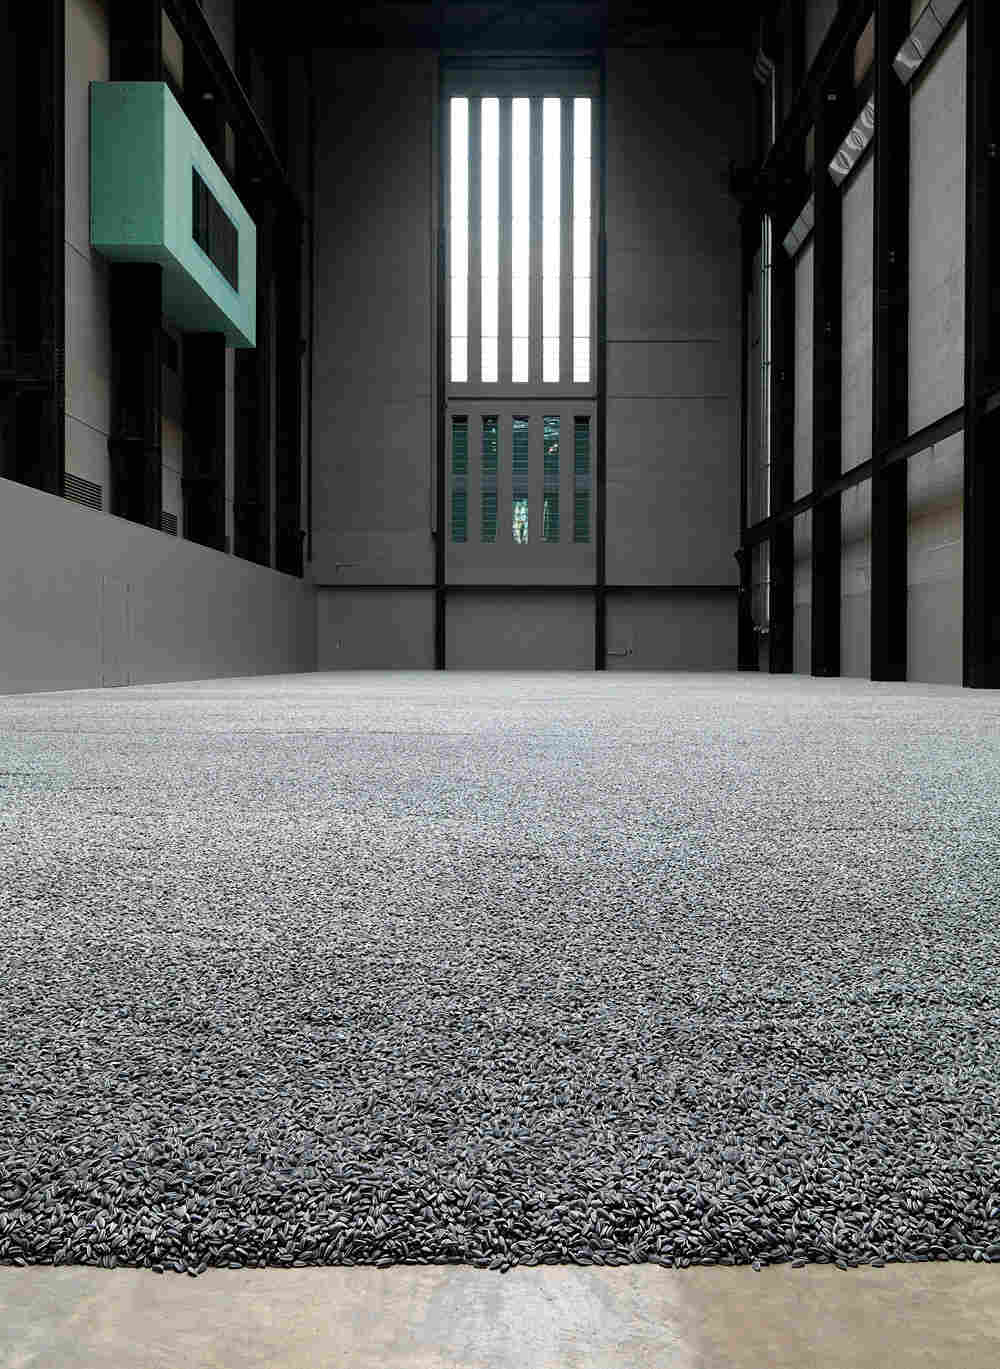 Sunflower Seeds 2010, an installation at London's Tate Museum